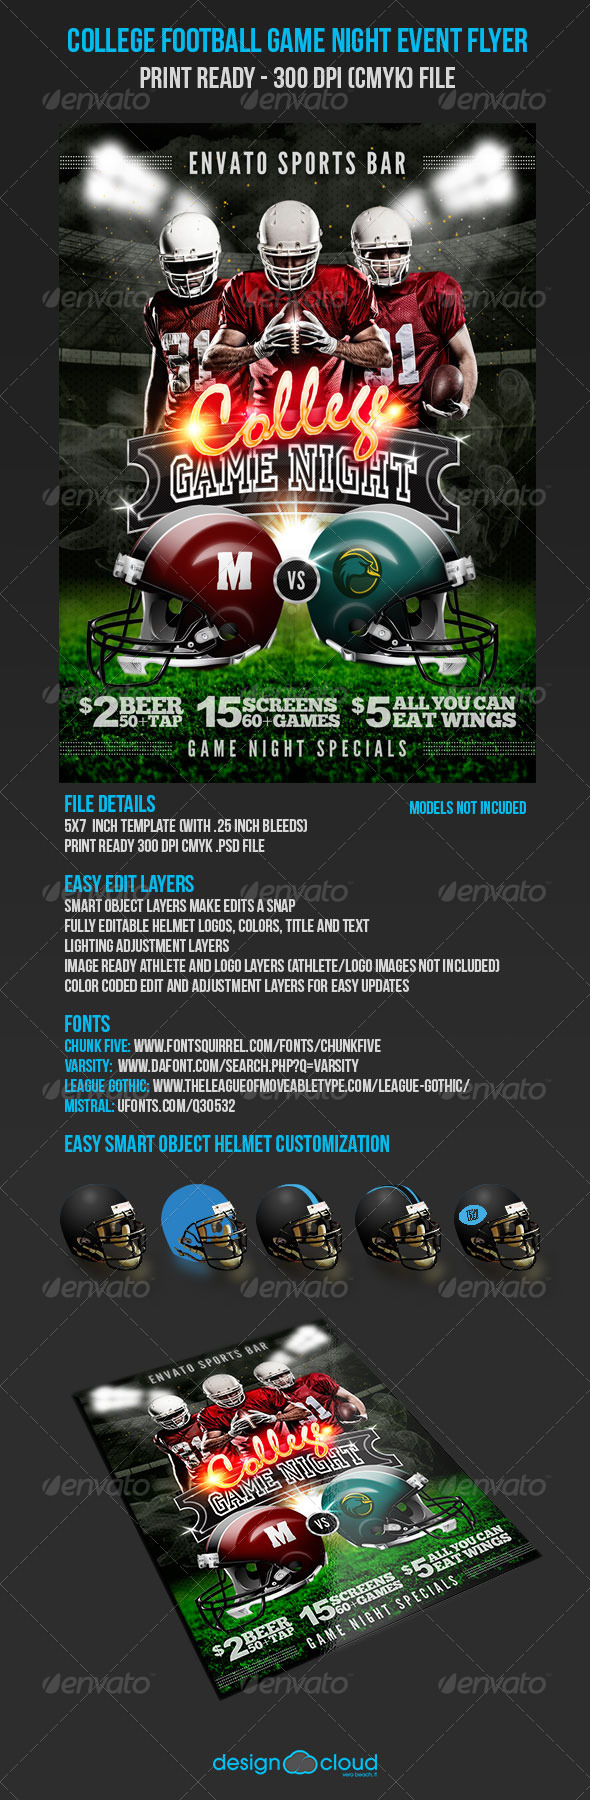 GraphicRiver College Football Game Night Event Flyer 5551466